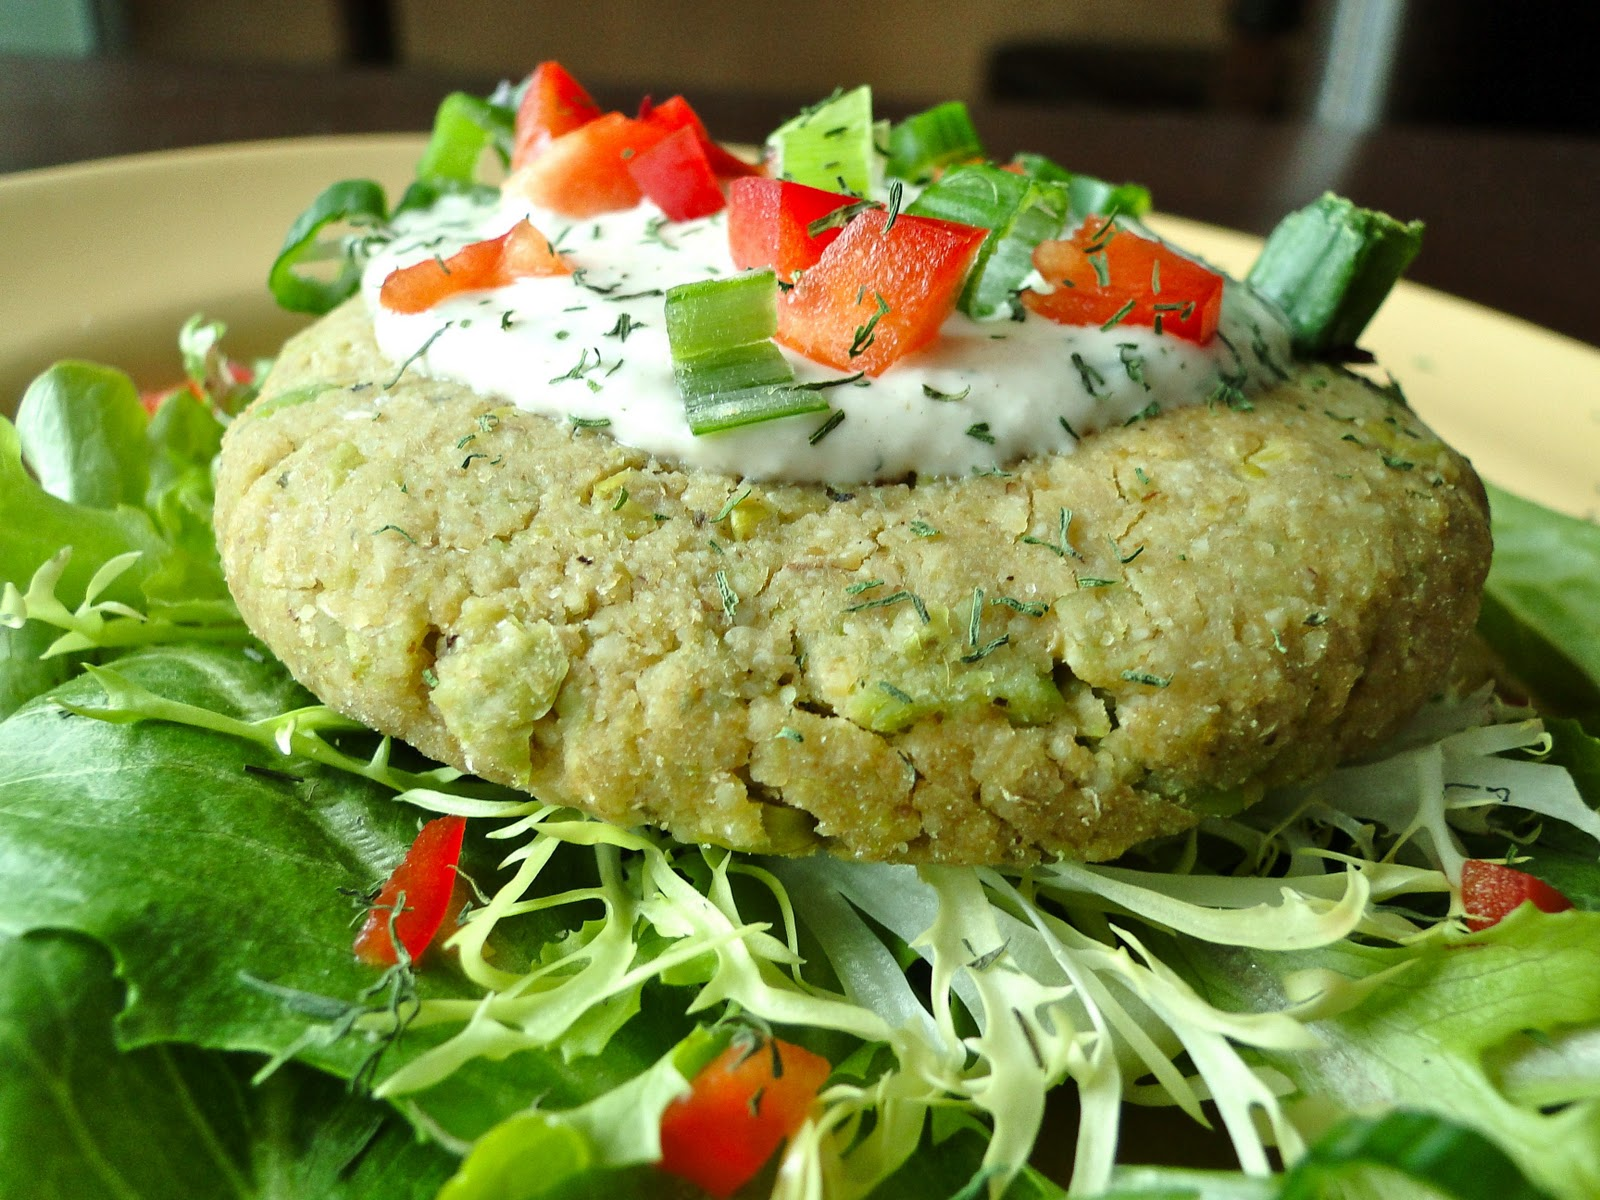 ... Eating: Chickpea-Edamame Burgers with Tahini-Dill Sauce (Vegan, GF